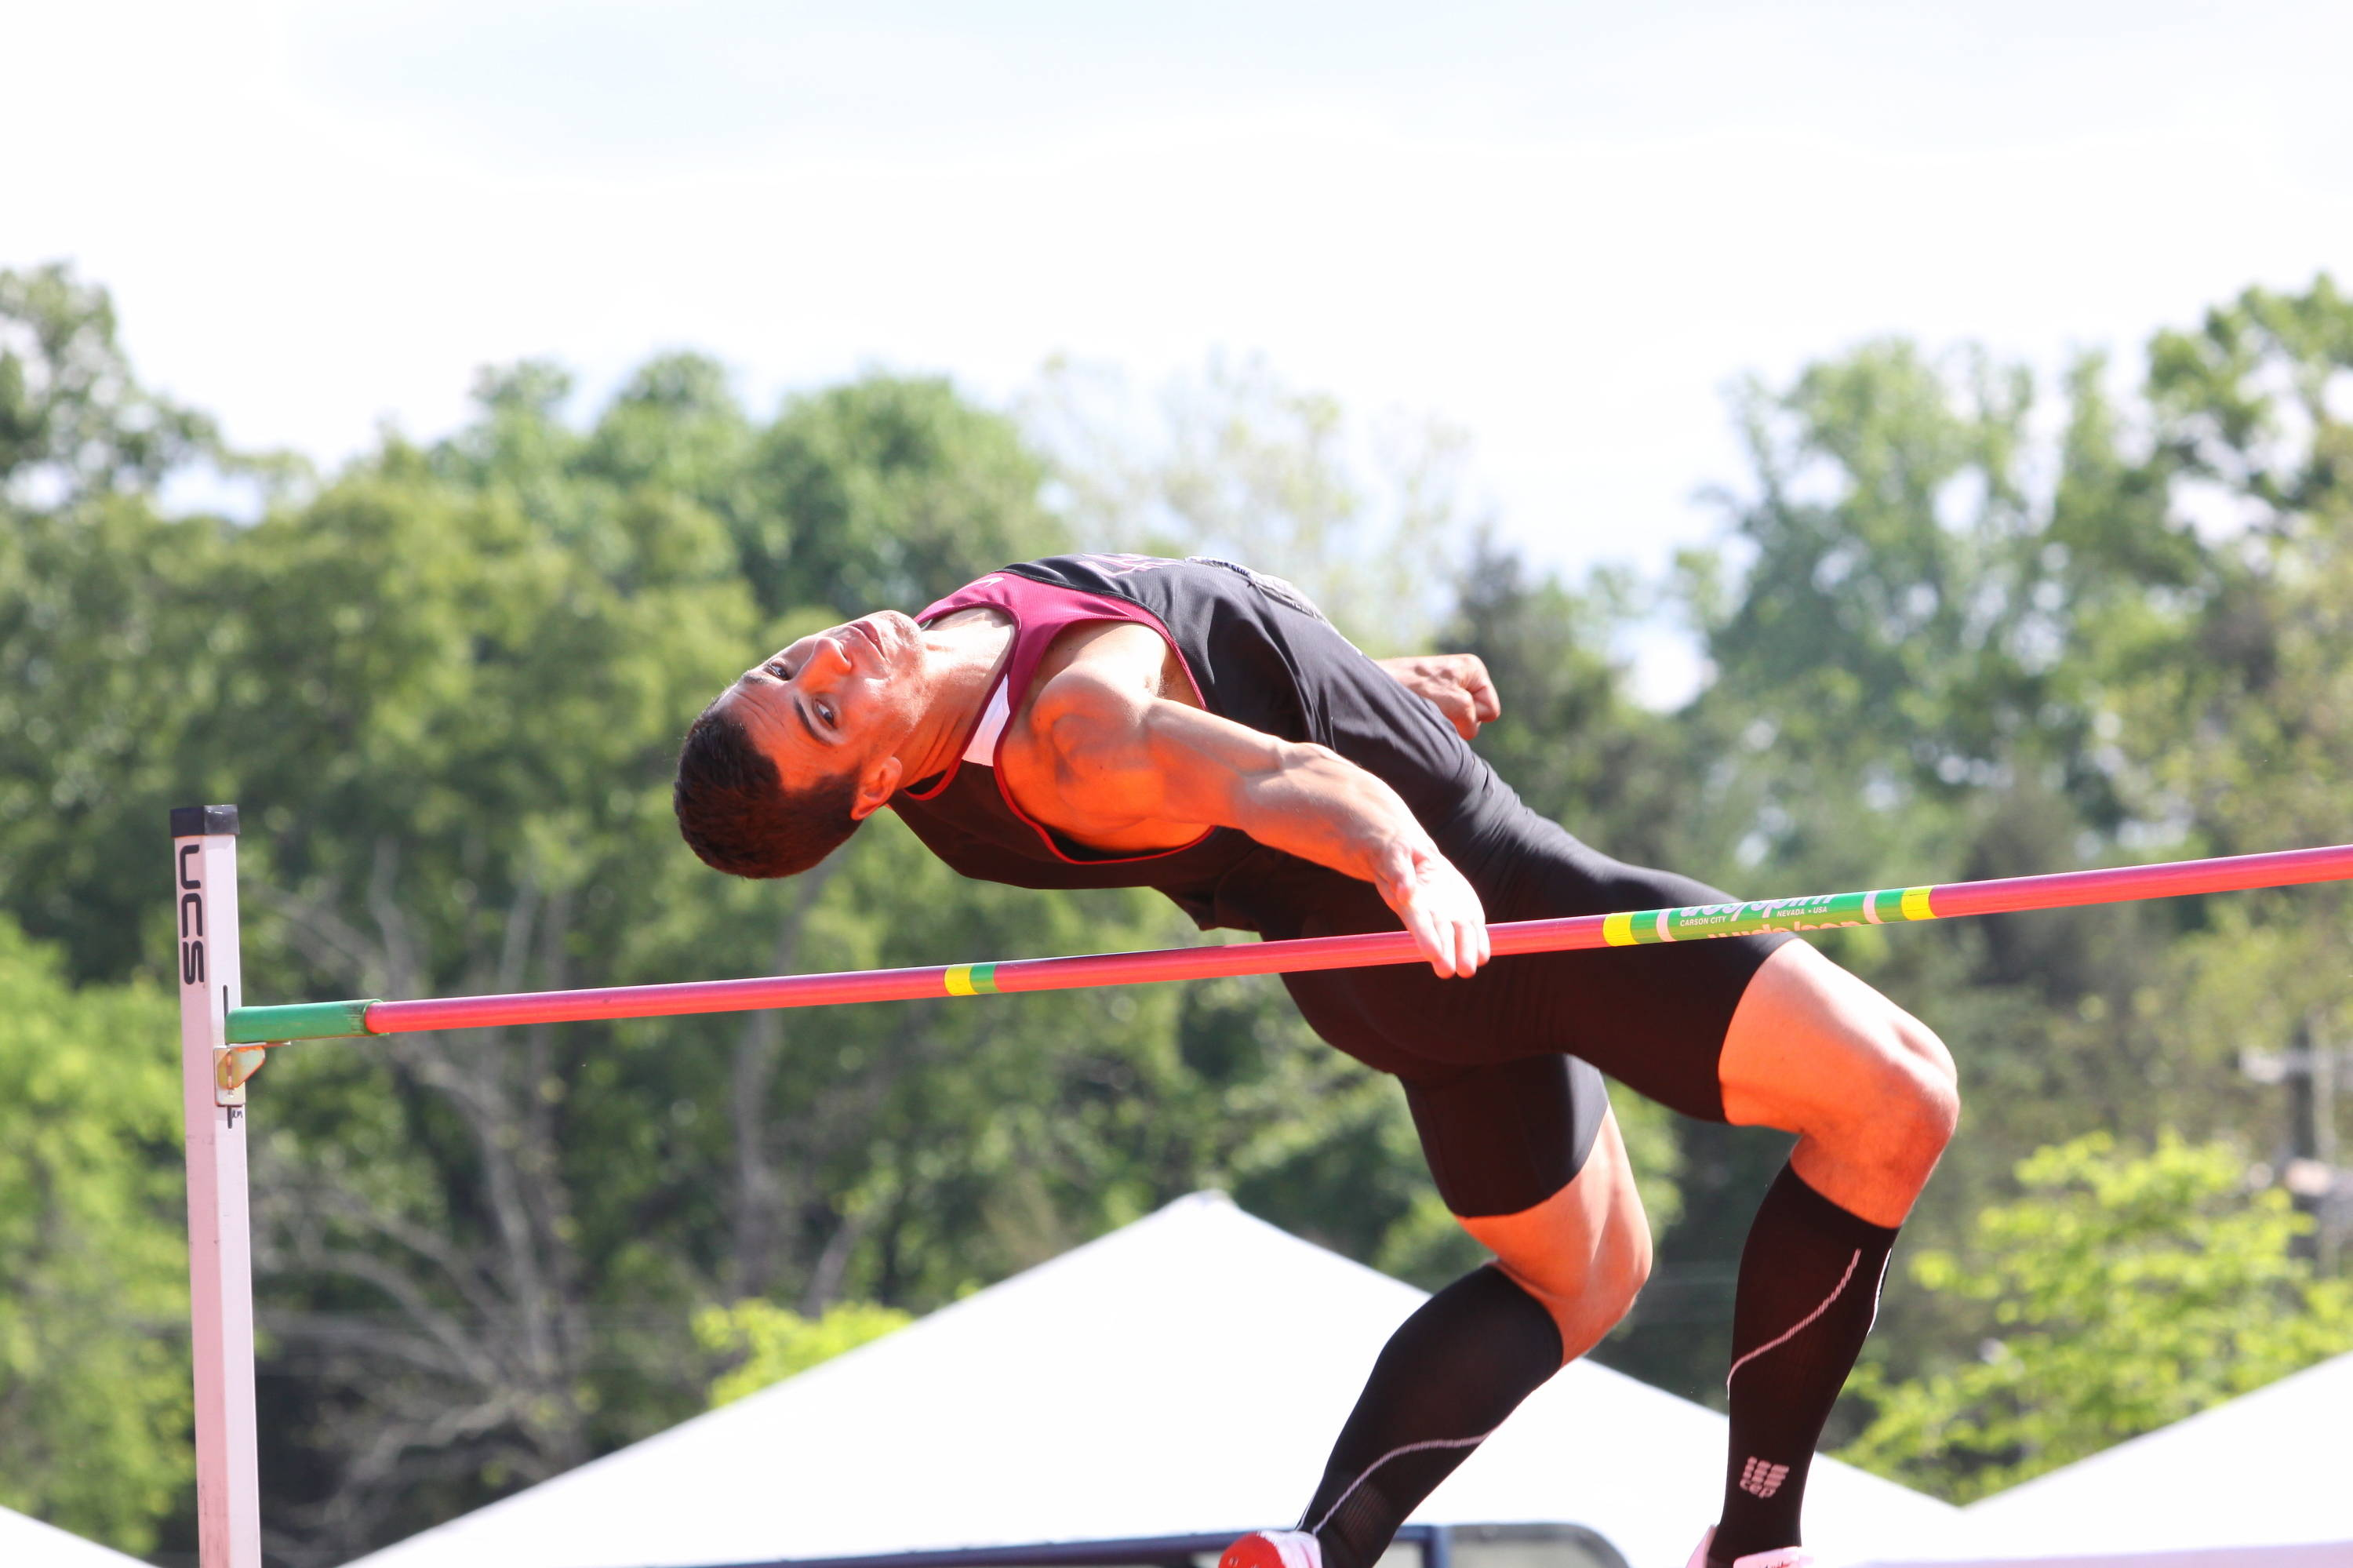 Where he set a new personal-best of 2.06m (6-9), good for 859 points, and opened up 3275-3100 edge over Beach as they returned to the track for Thursday's fifth and final event ...